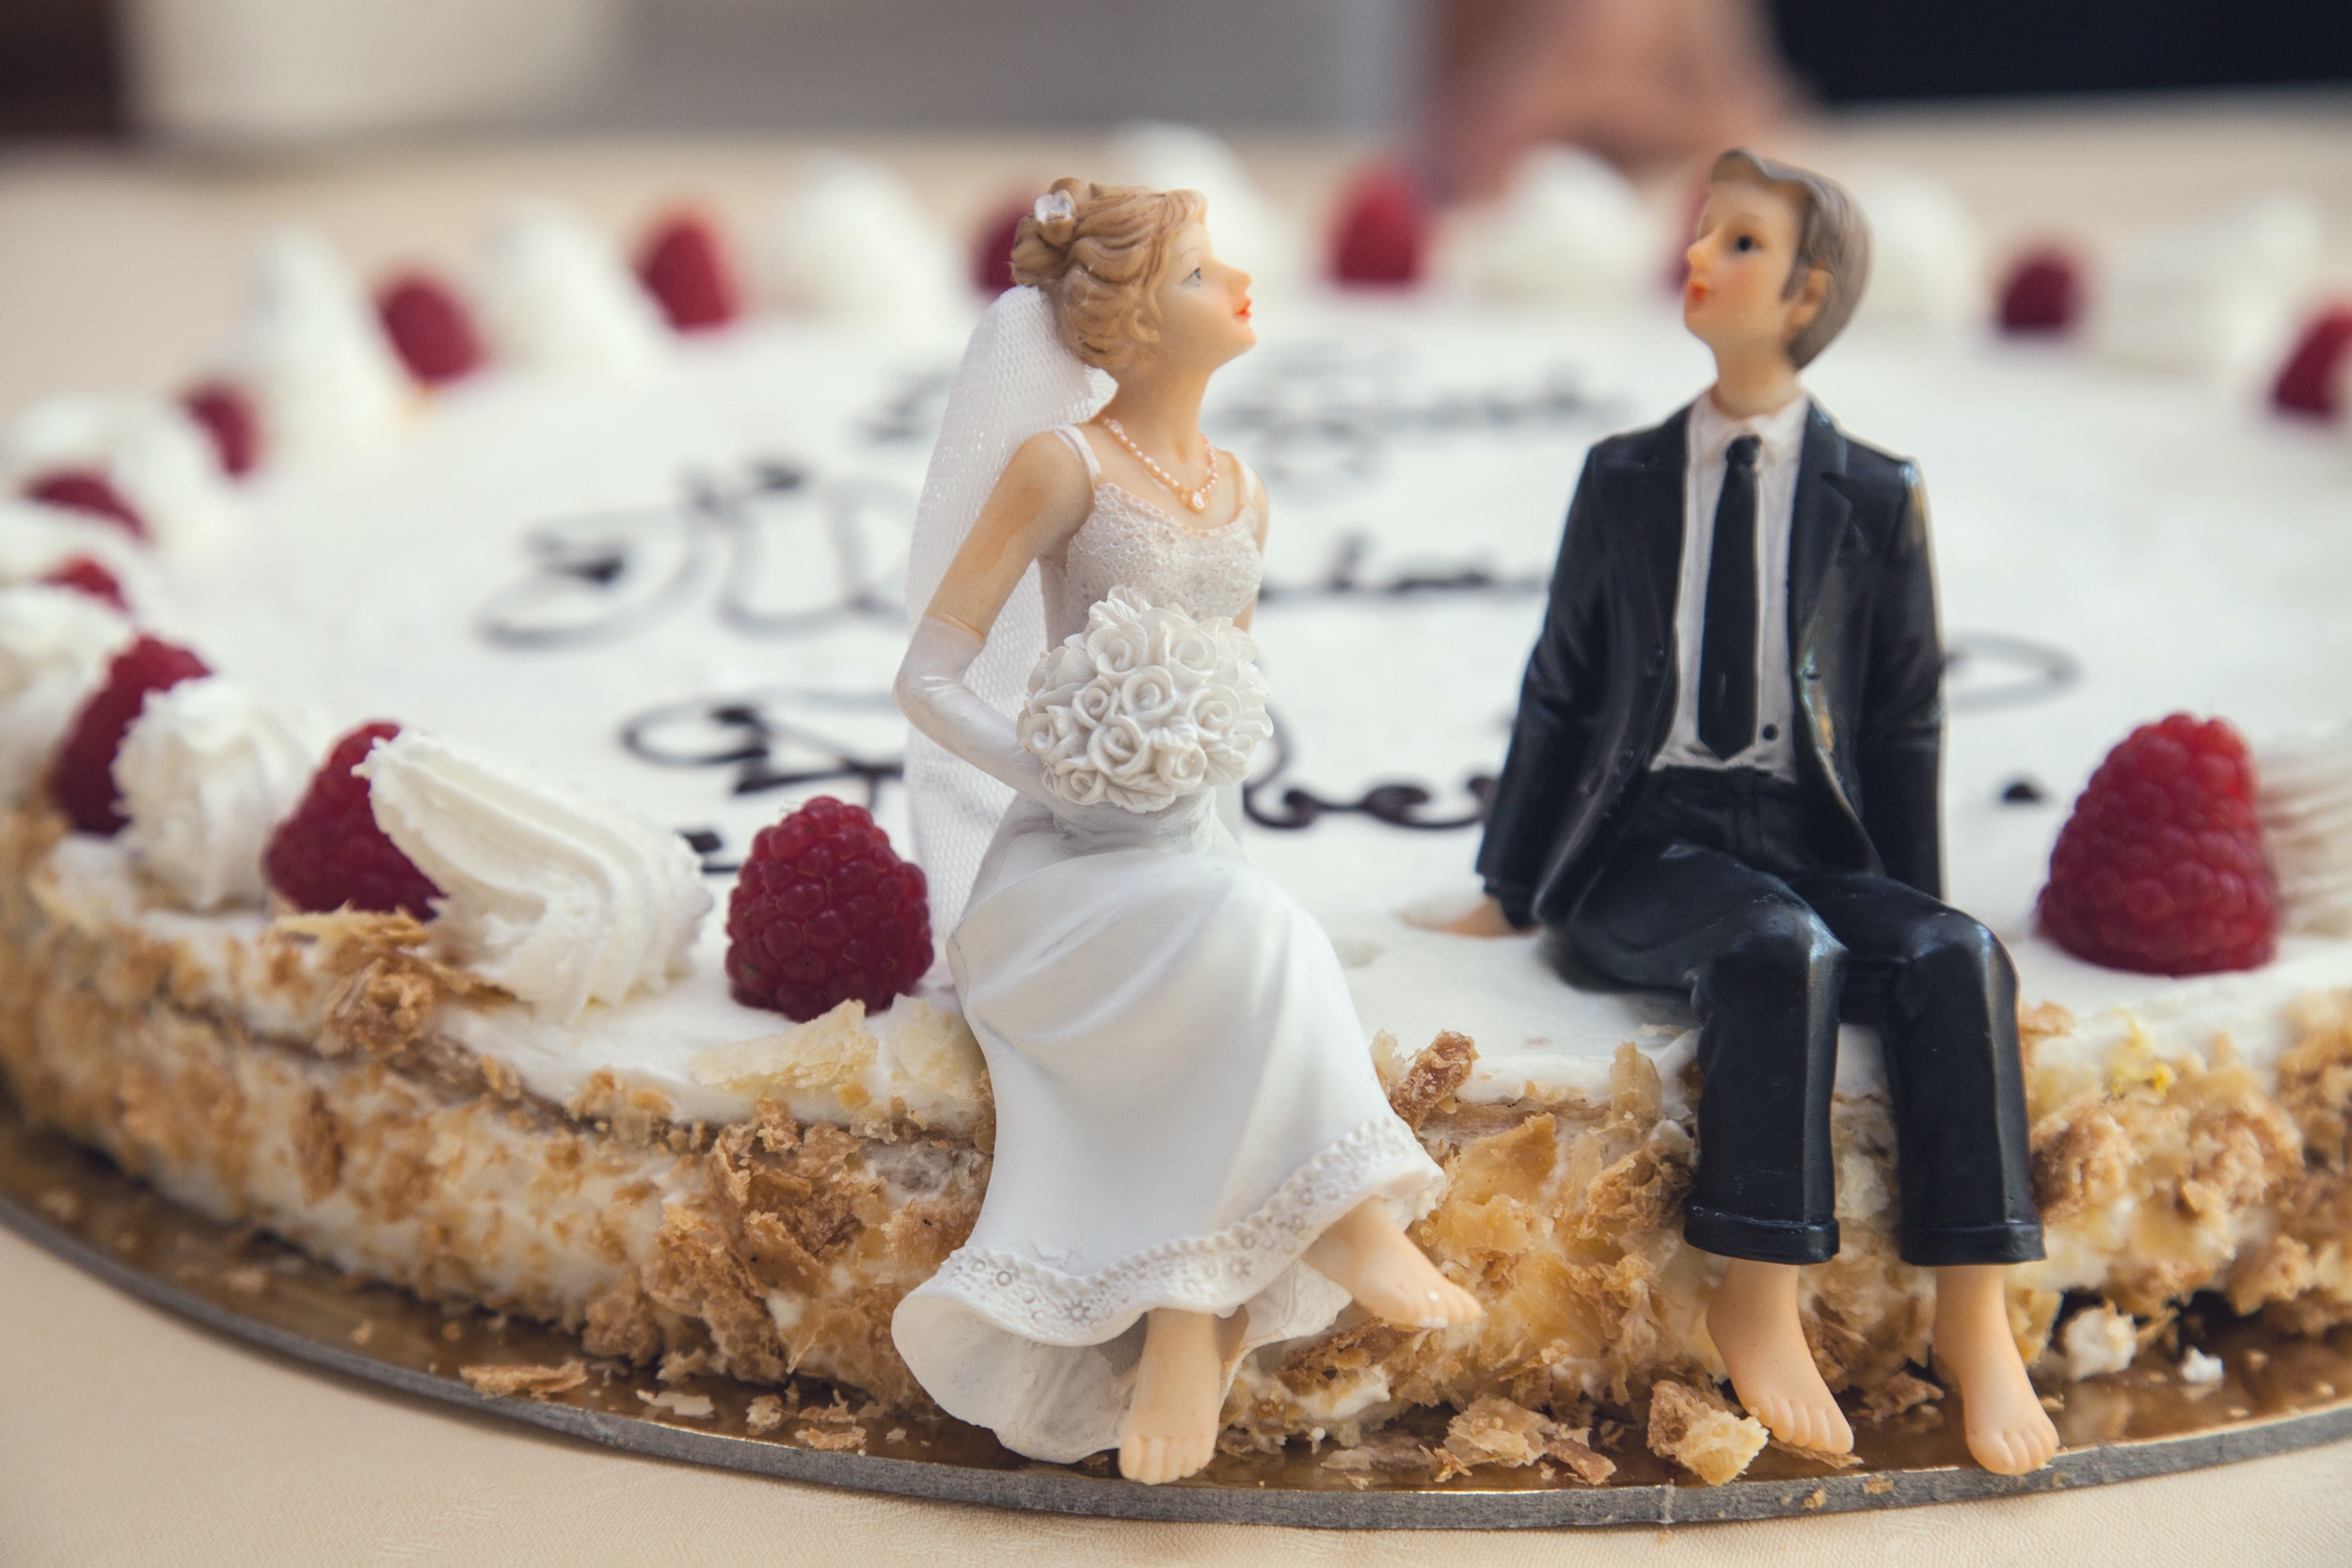 What Is a Prenuptial and a Postnuptial Agreement?